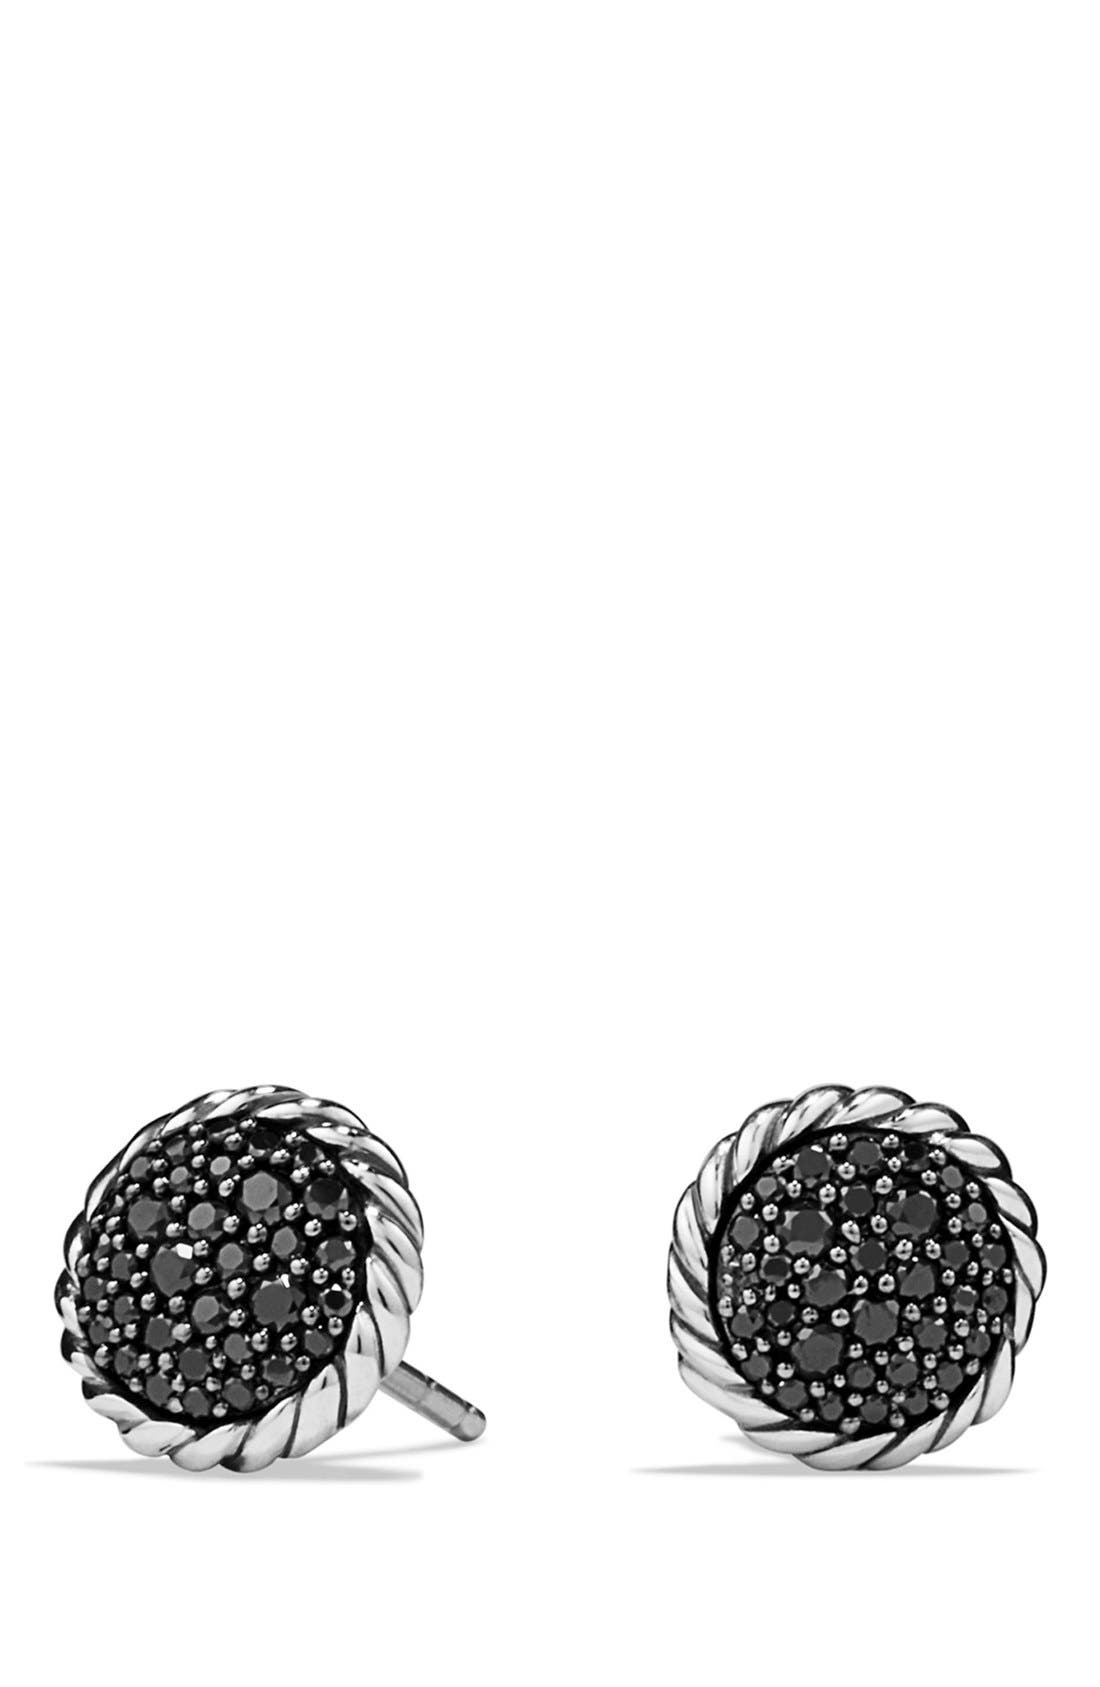 David Yurman 'Châtelaine' Pavé Earring with Black Diamonds